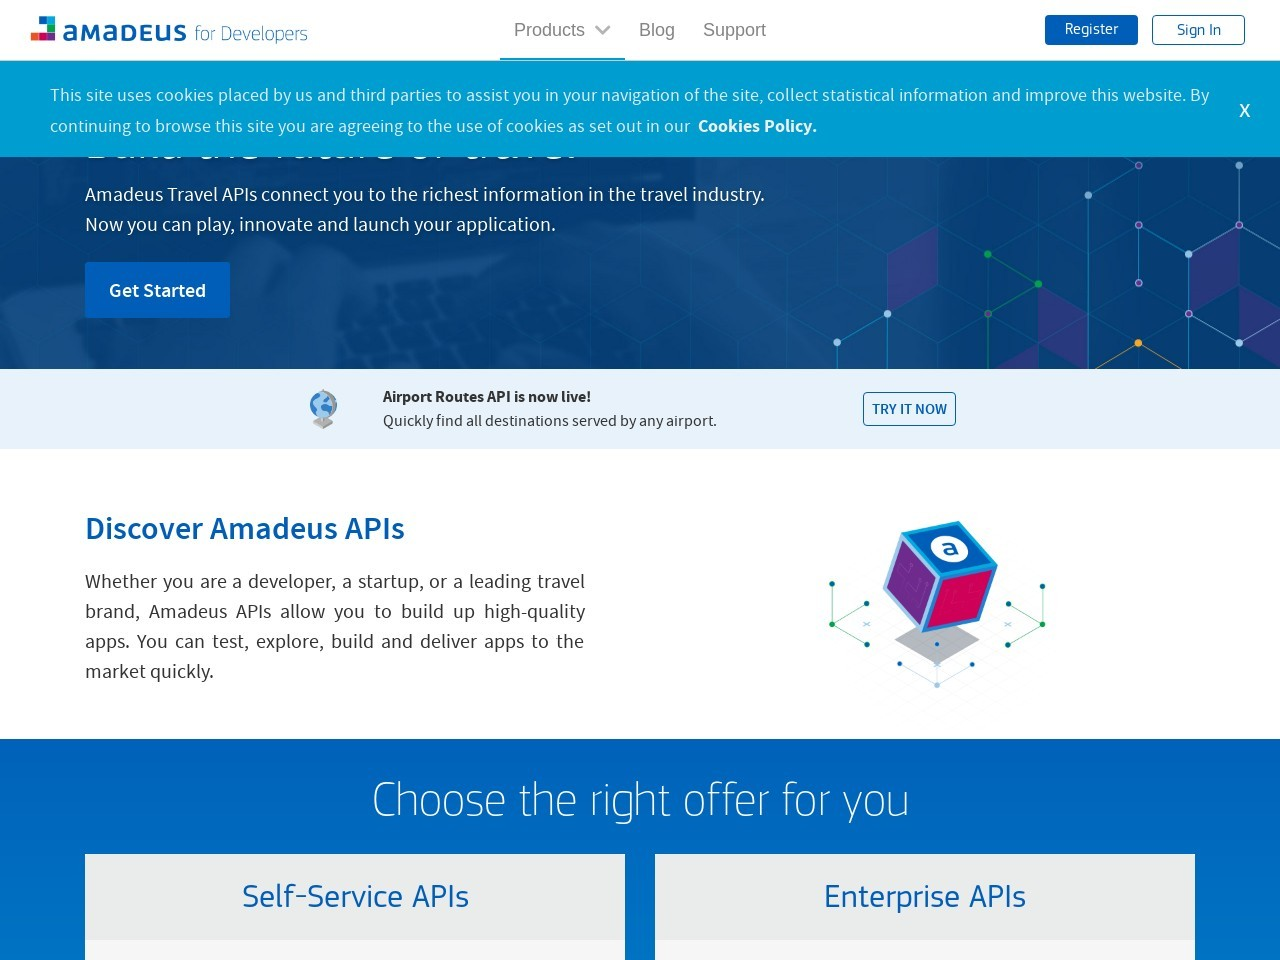 https://developers.amadeus.com/